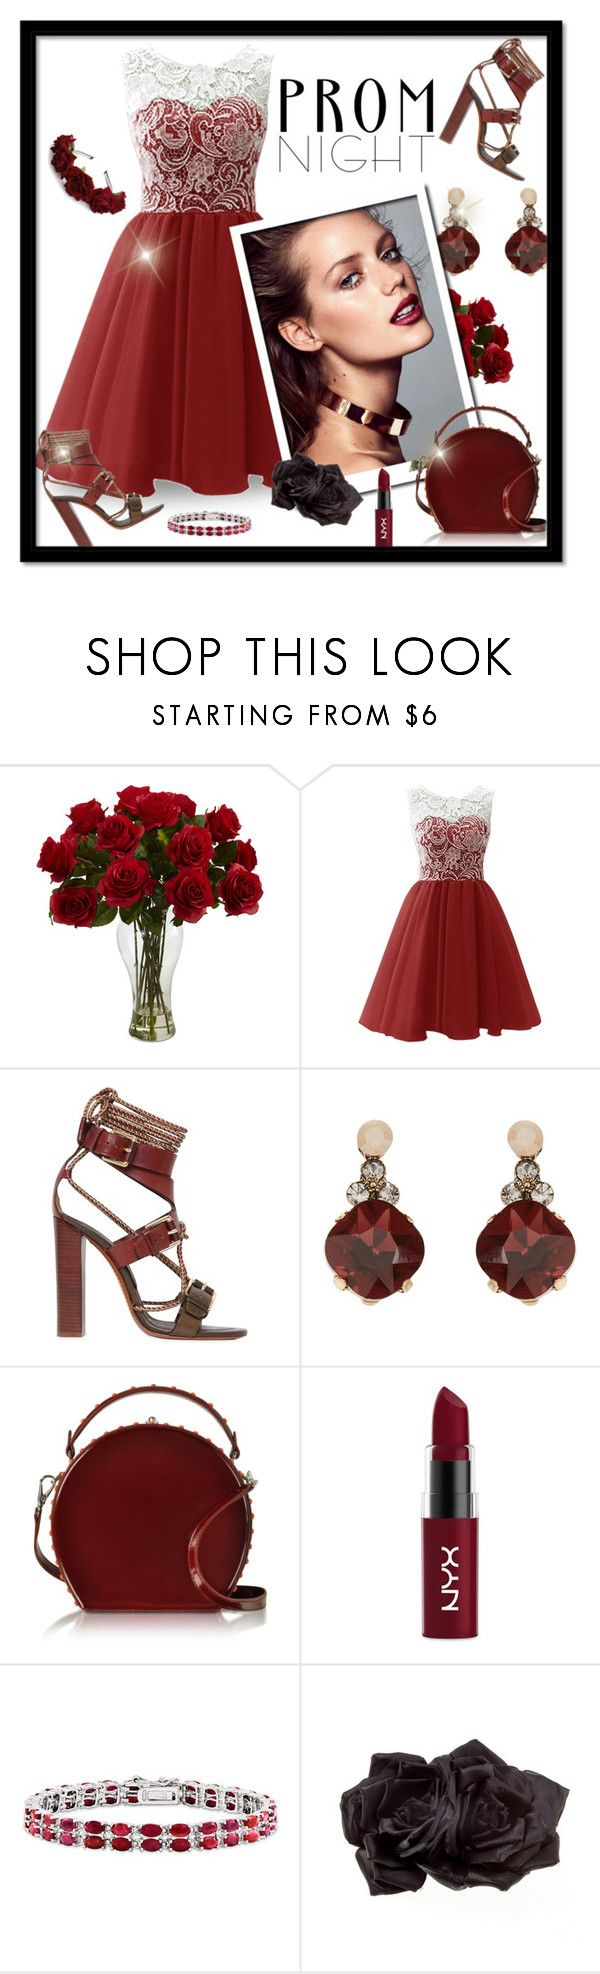 """Perfect Prom Night-Burgundy"" by majezy ❤ liked on Polyvore featuring Etro, Accessorize, Bertoni, NYX, Kevin Jewelers and Johnny Loves Rosie"